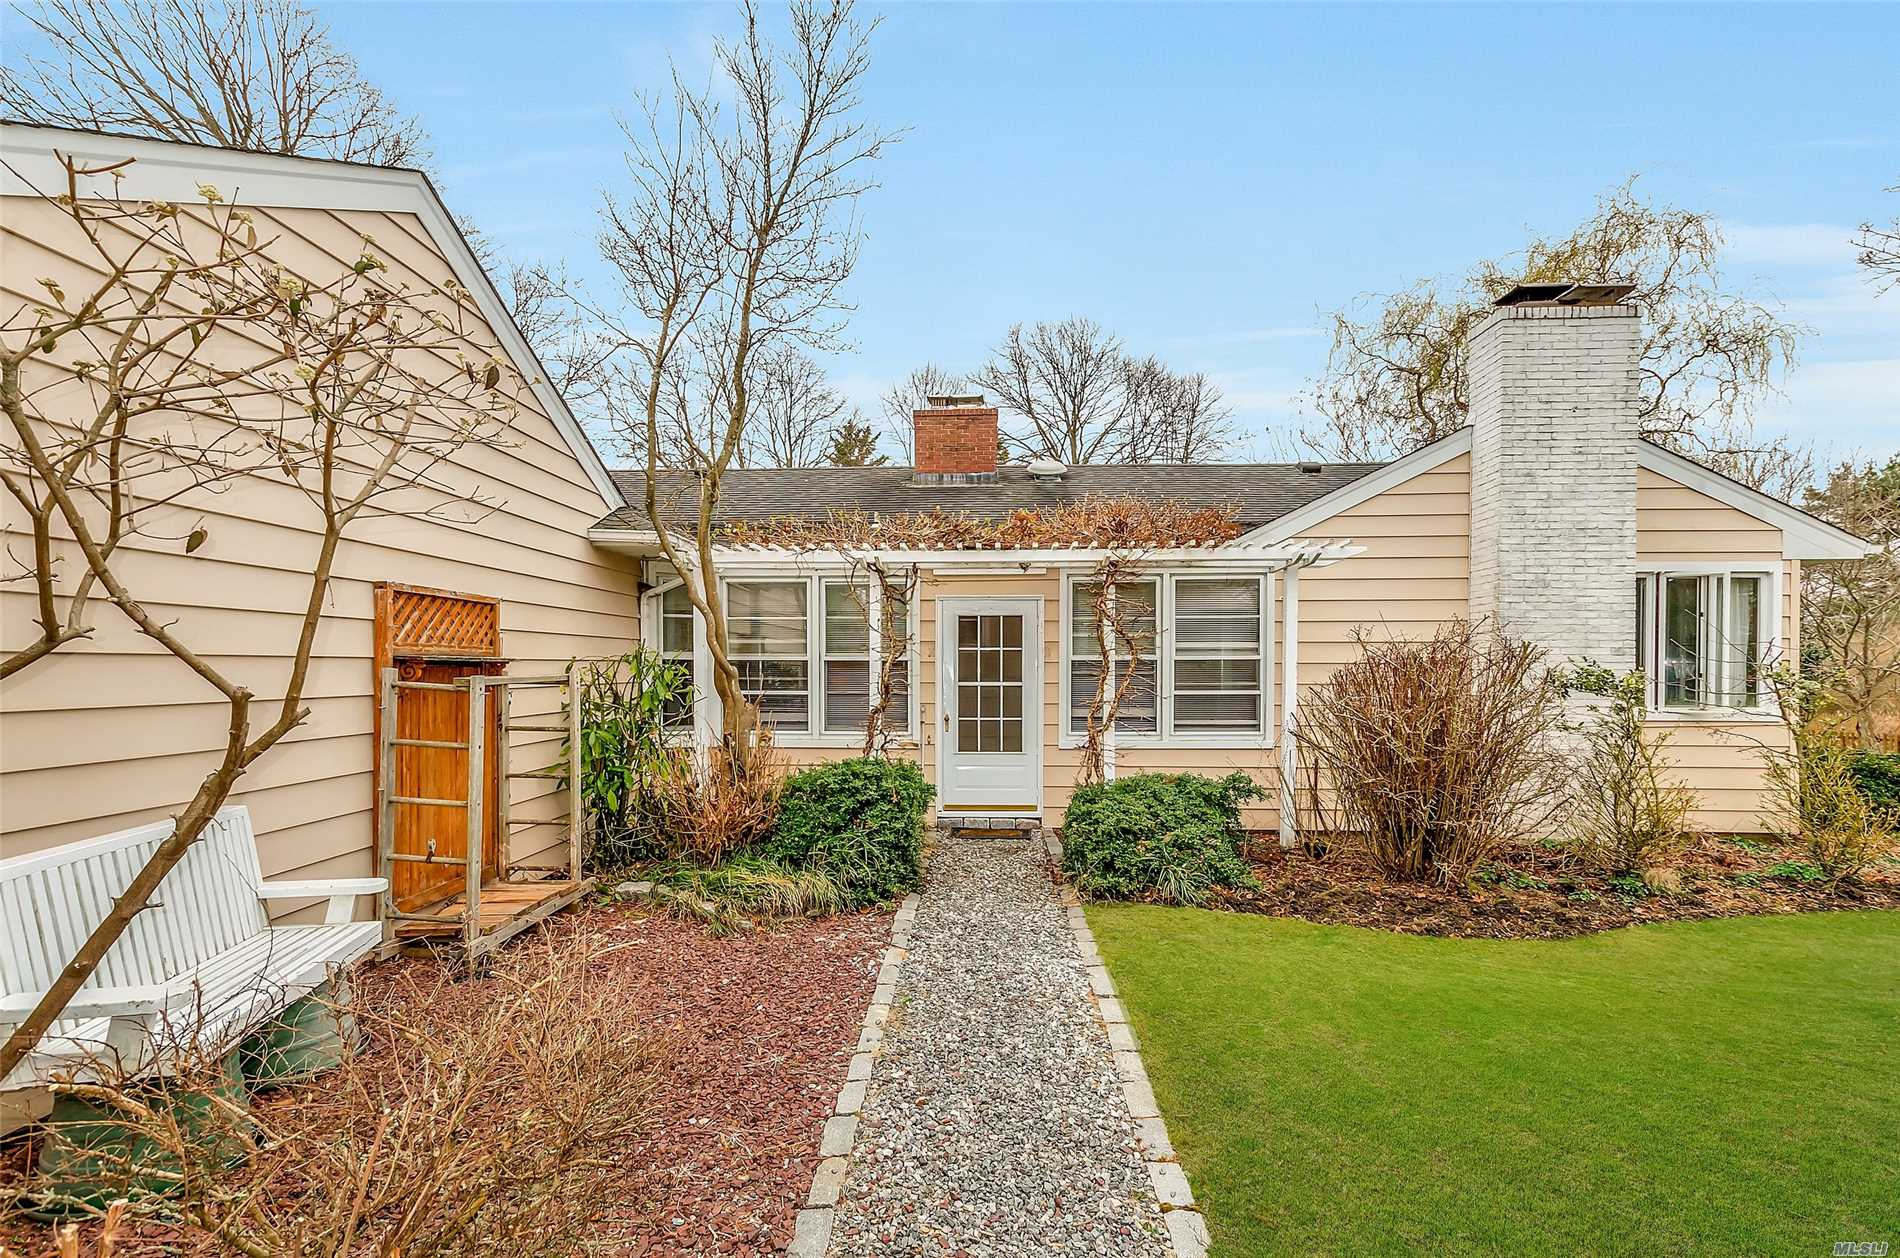 Photo of home for sale at 90 Evergreen Ave, East Moriches NY